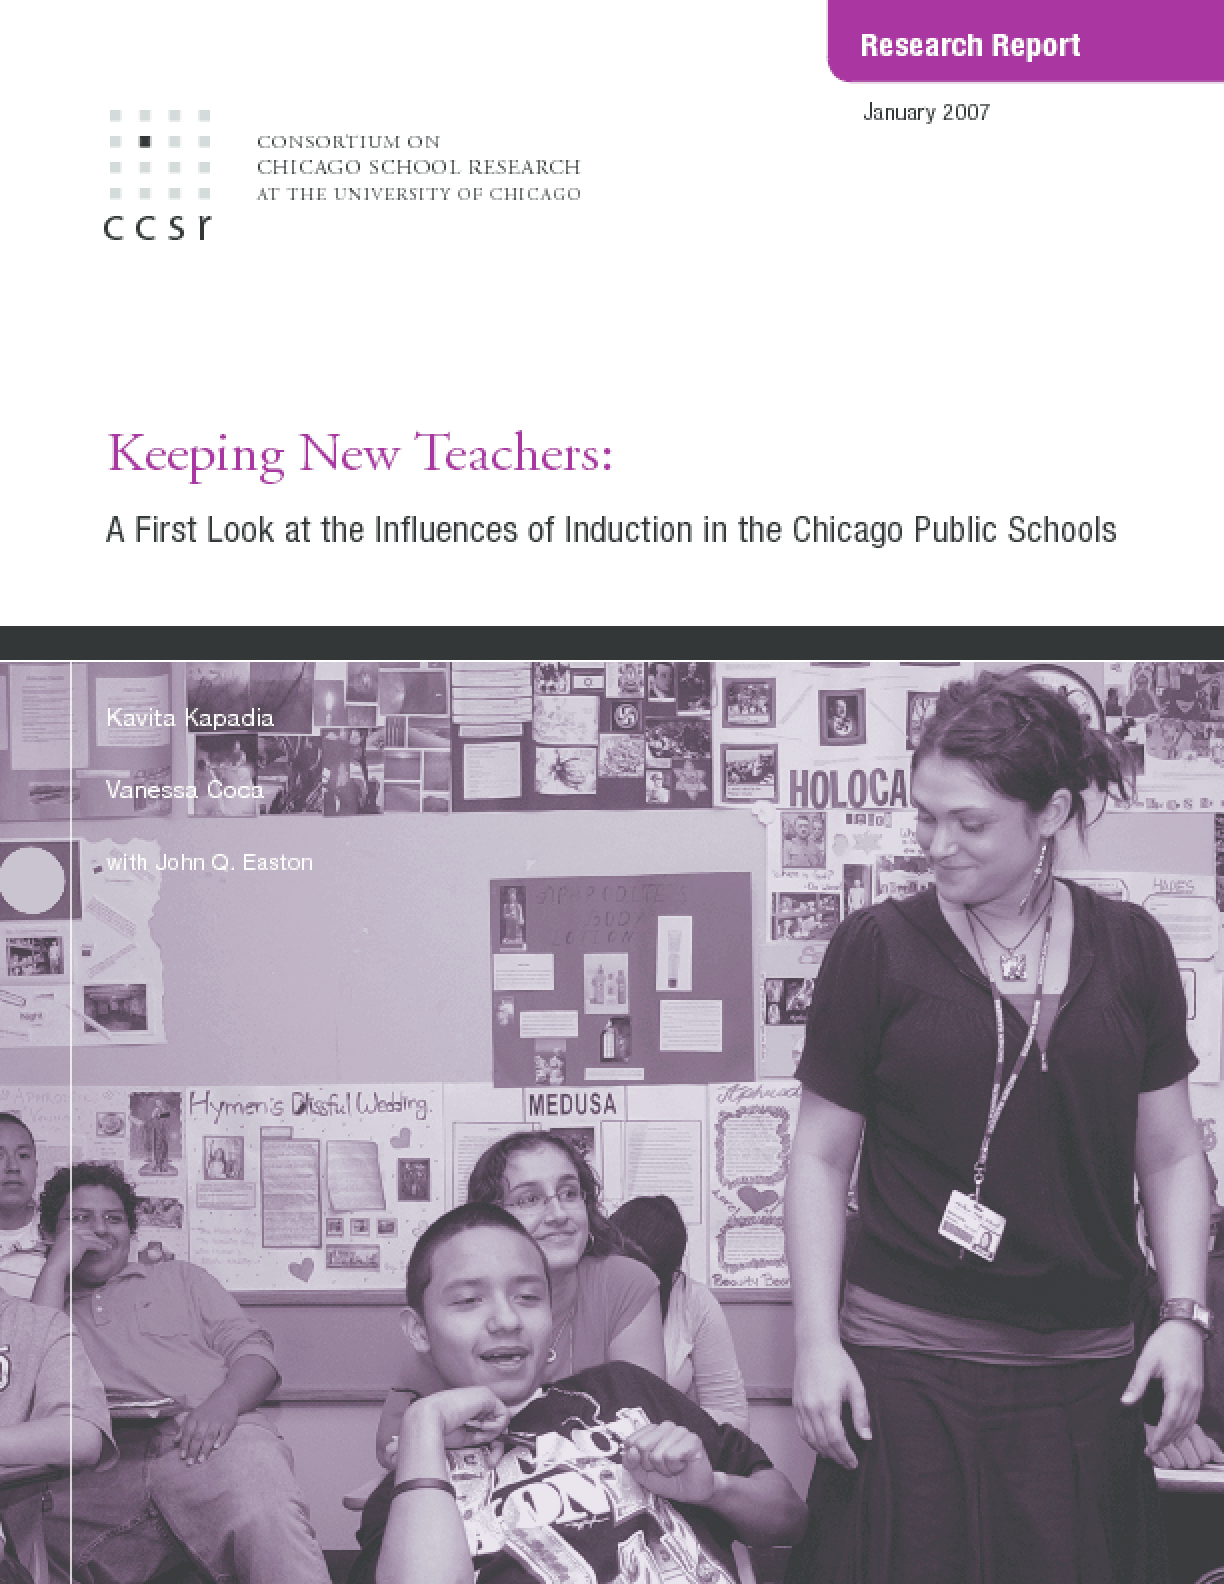 Keeping New Teachers: A First Look at the Influences of Induction in the Chicago Public Schools